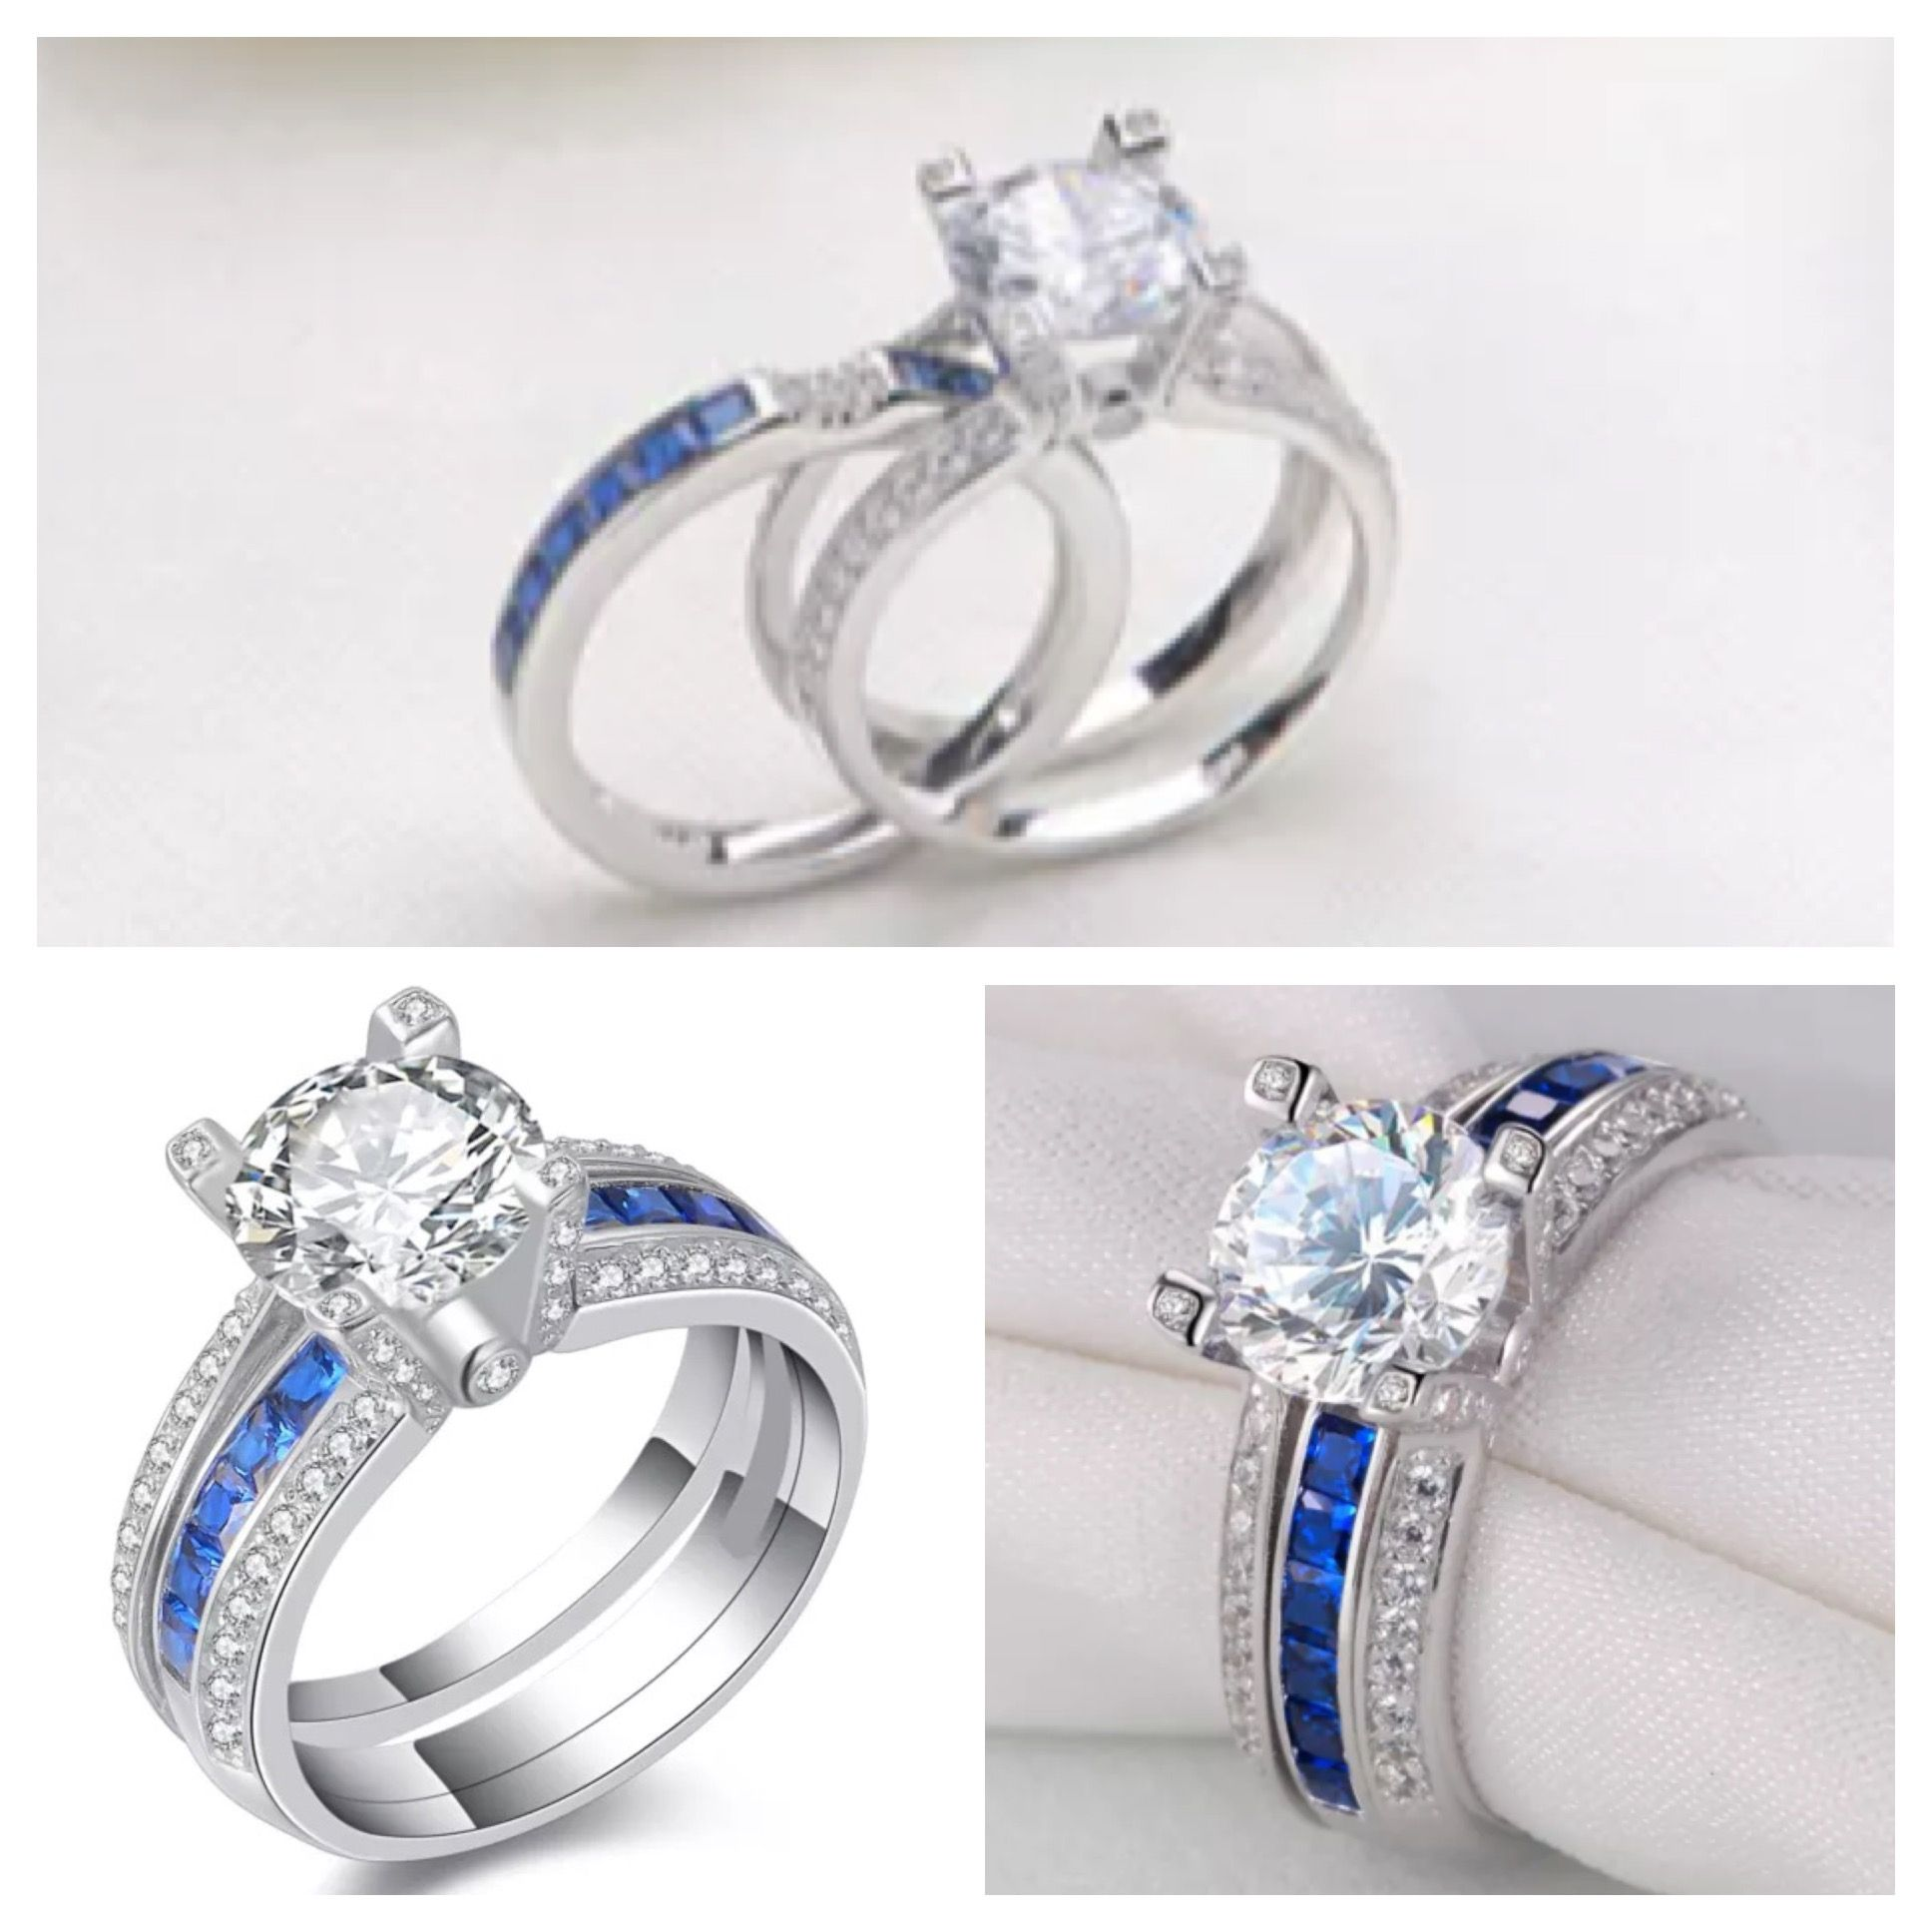 rings ring rose de db diamond pav beautiful for jewellery gold classic solitaire blue women bridal engagement line thin beers us